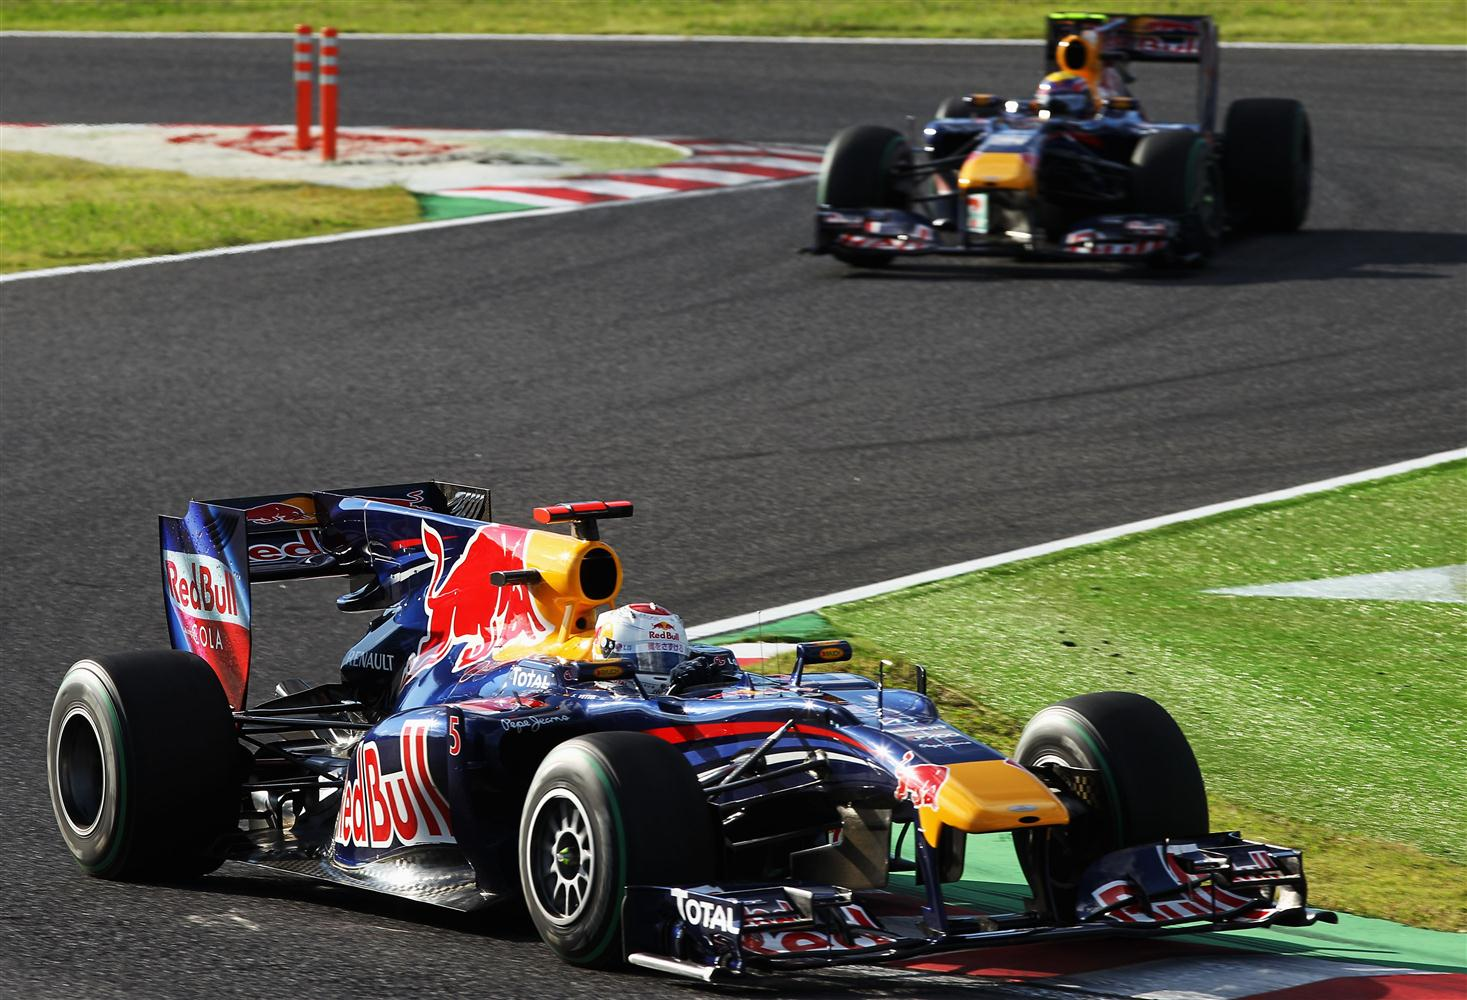 2010_red_bull_sebastian_vettel_mark_webber_japan_gp_paul_gilham_getty_images